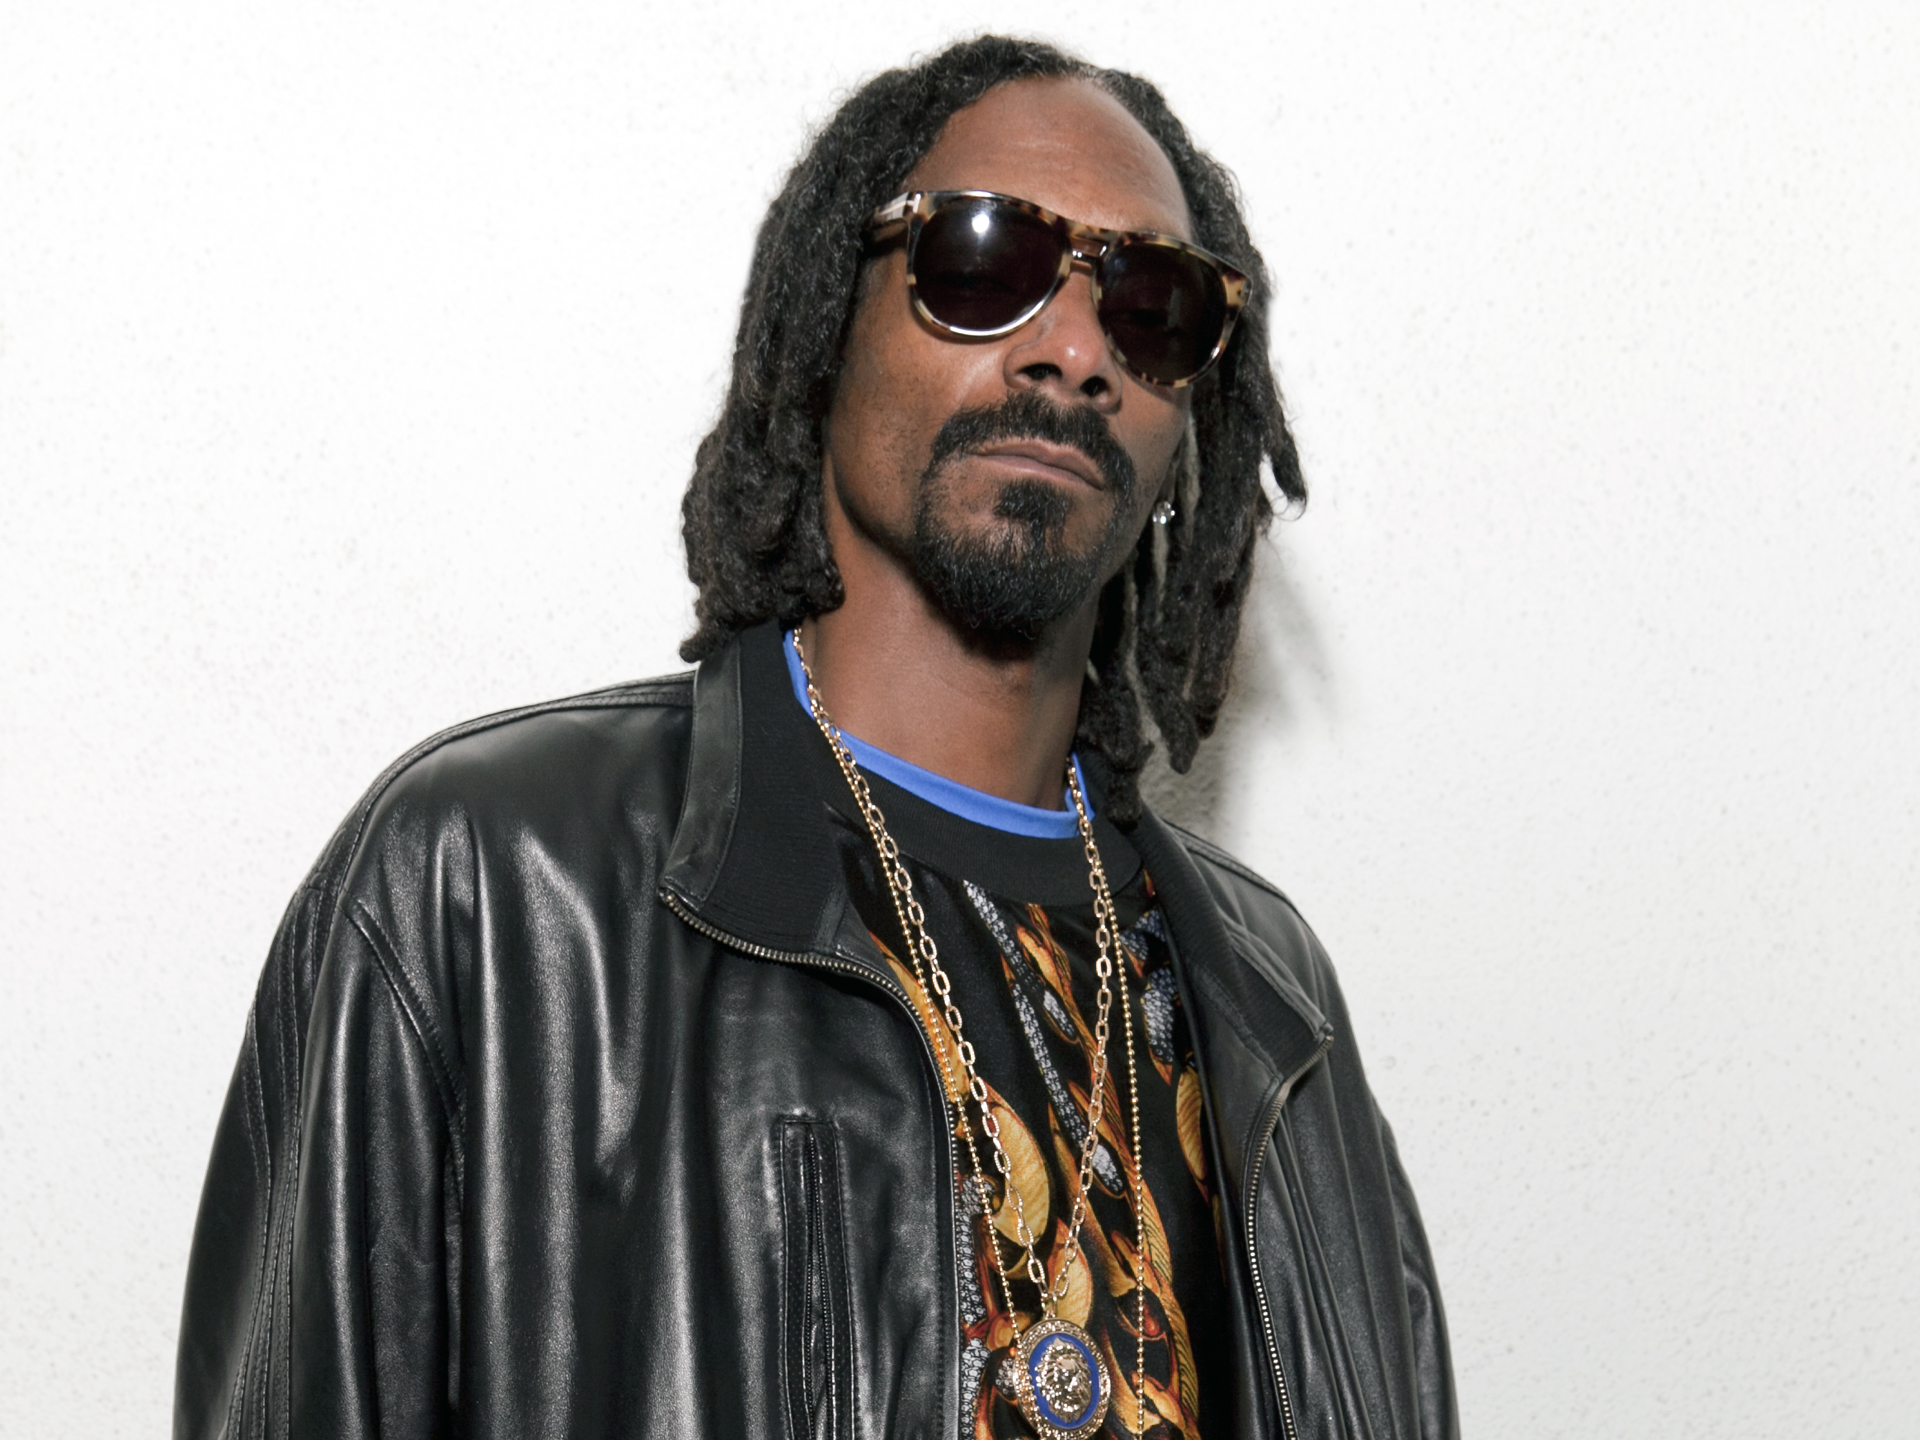 Snoop Dogg Confirmed As Keynote Speaker For SXSW 2015